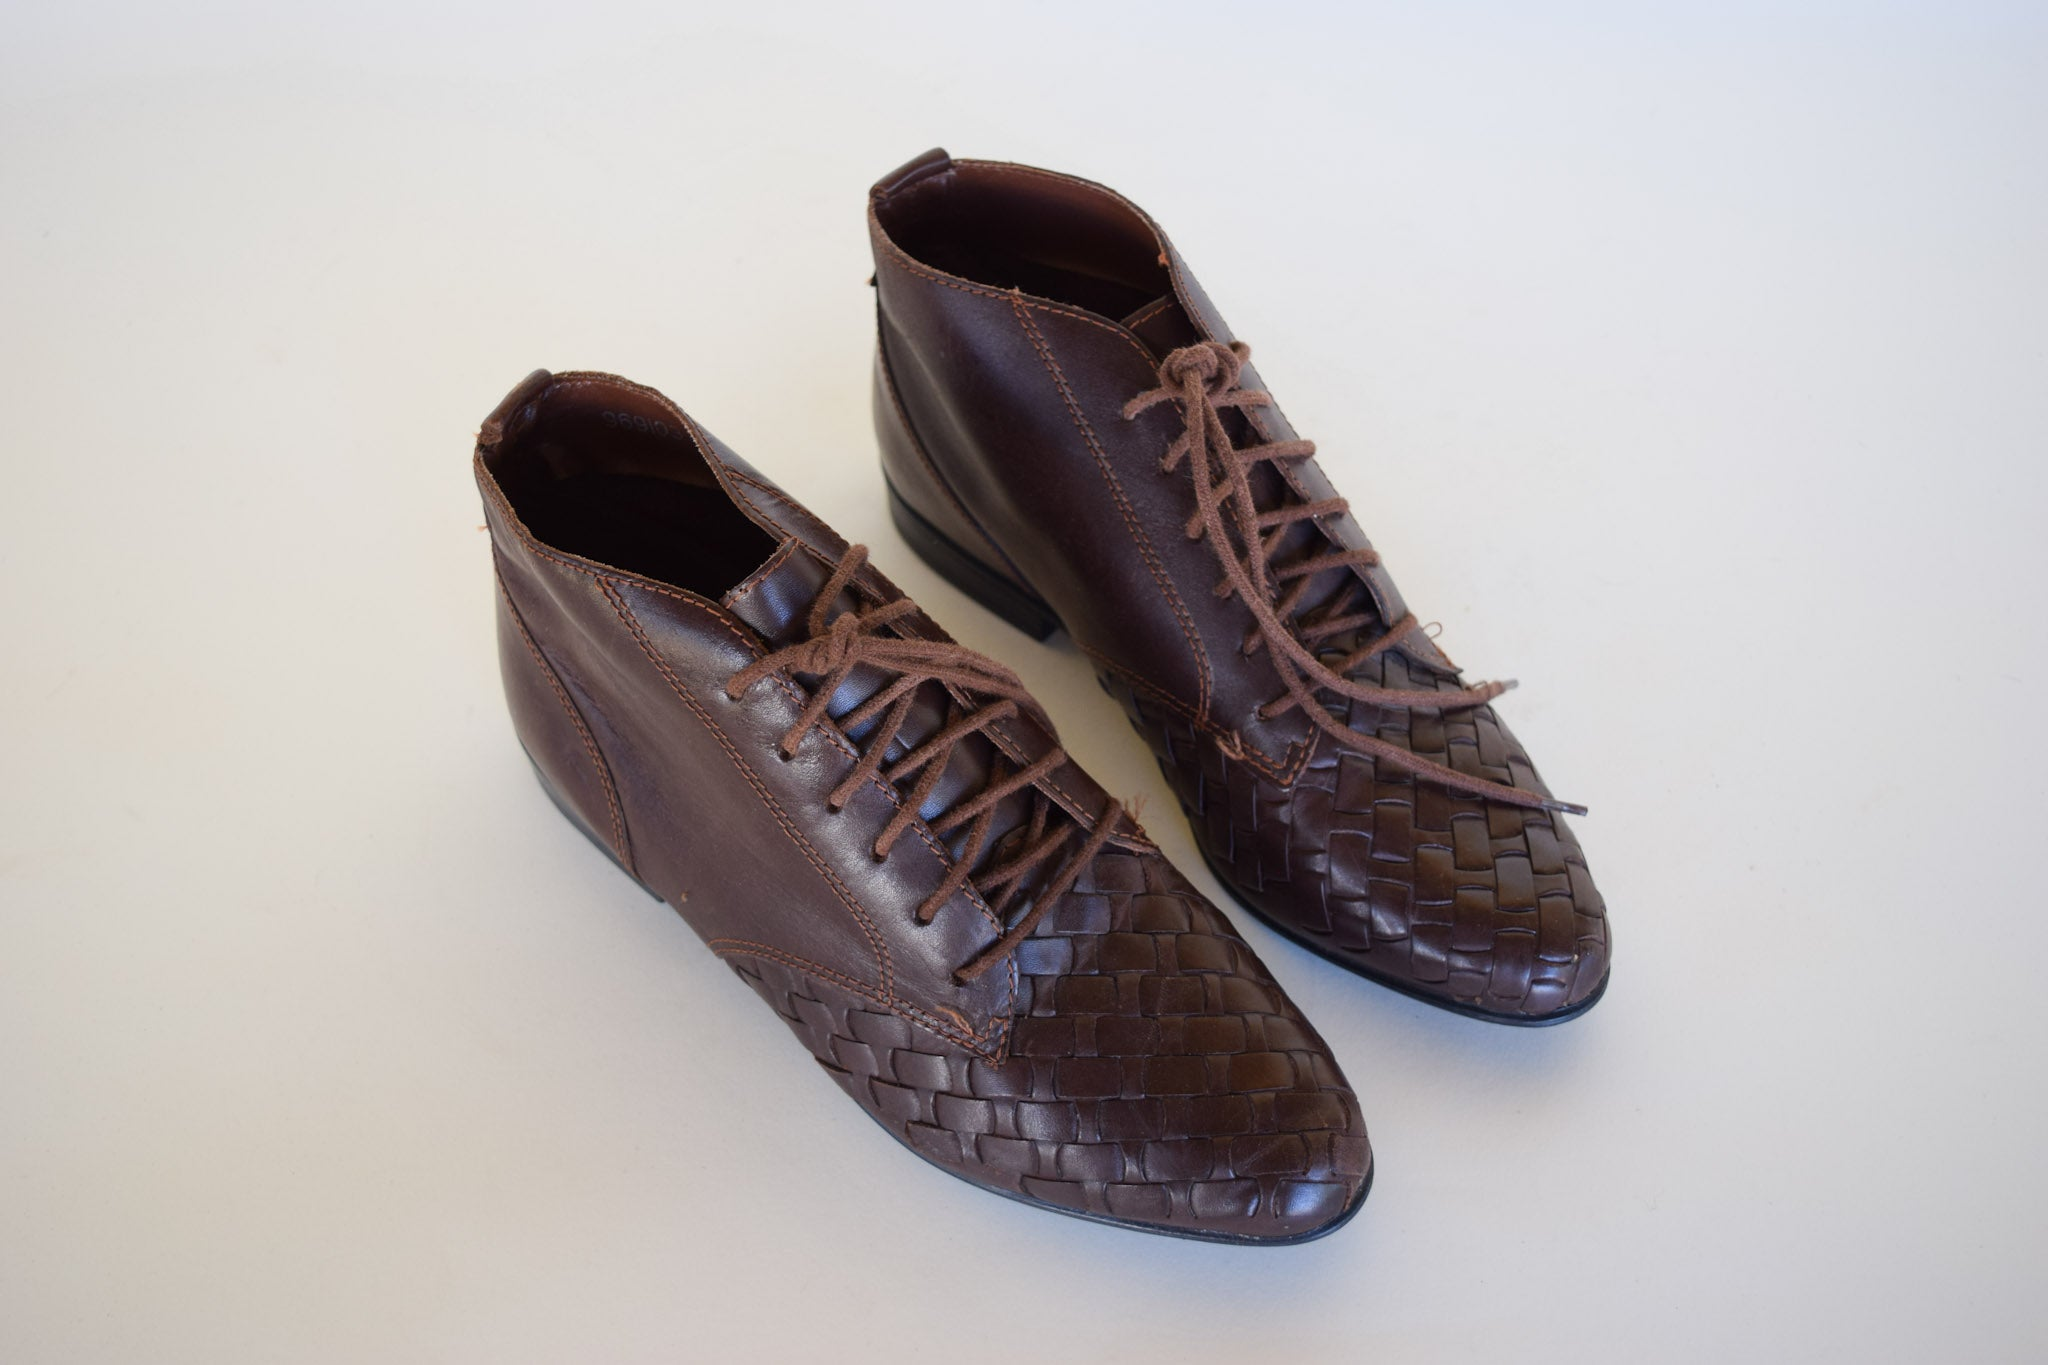 Woven Ankle Leather Boots